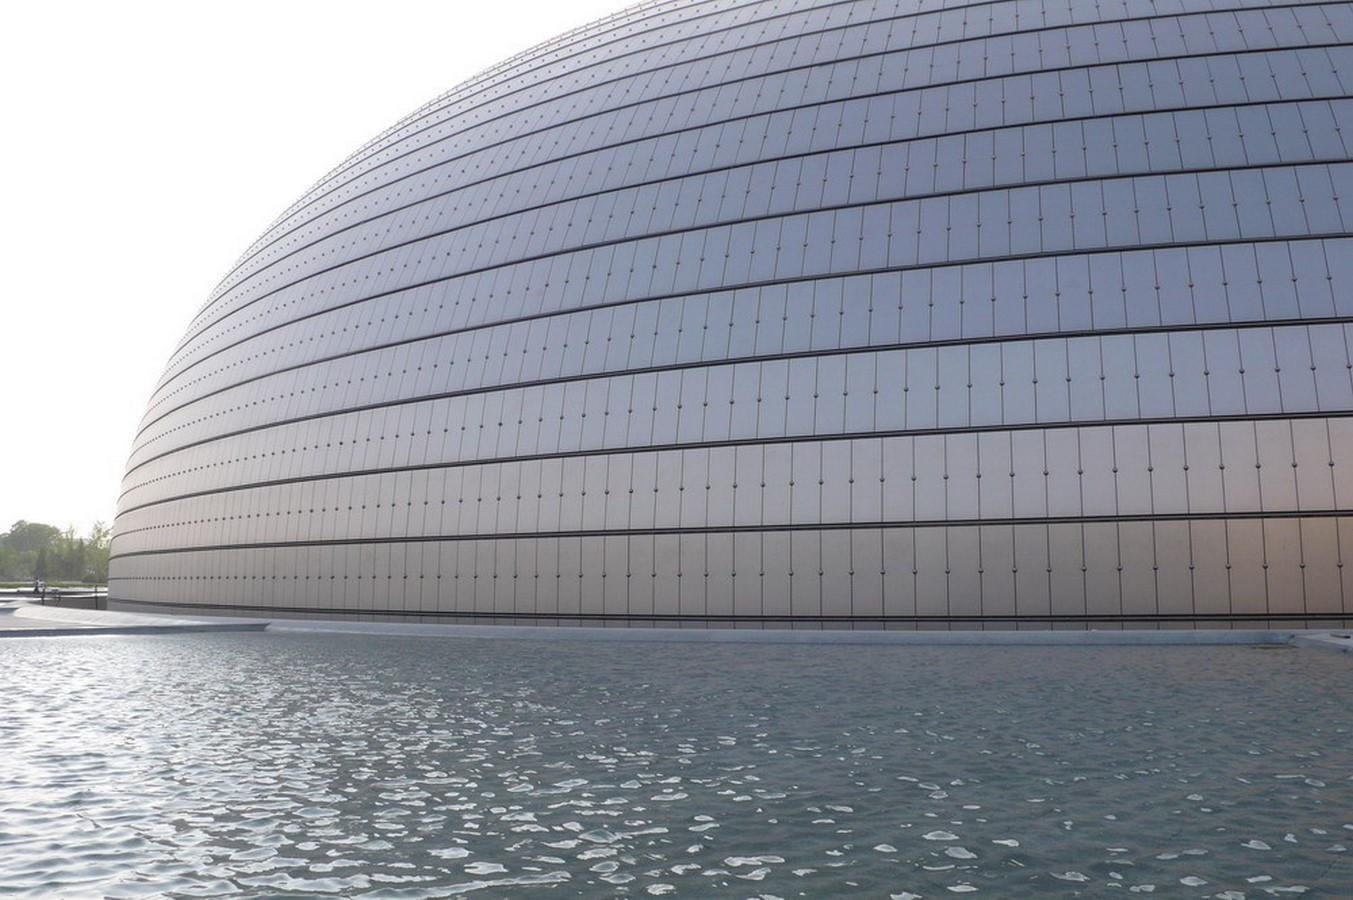 National Centre For The Performing Arts by Paul Andreu: Situated in the heart of Beijing - Sheet1